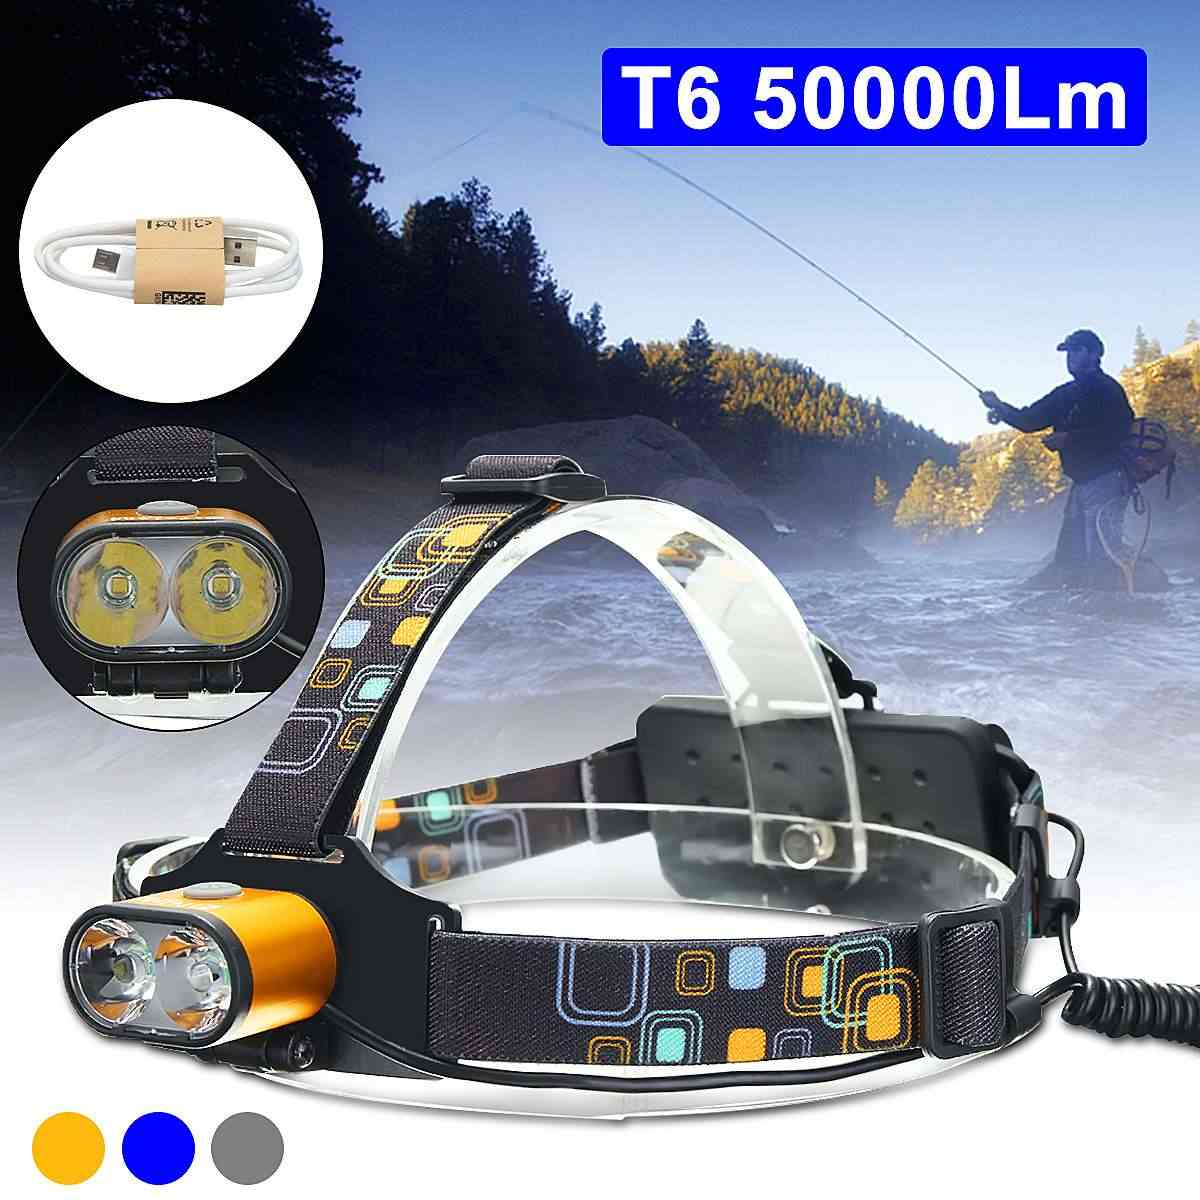 15000 Lumens LED Headlamp Waterproof Fishing Headlight USB Rechargeable Head Light Use 2*18650 Batteries Lamp For Camping